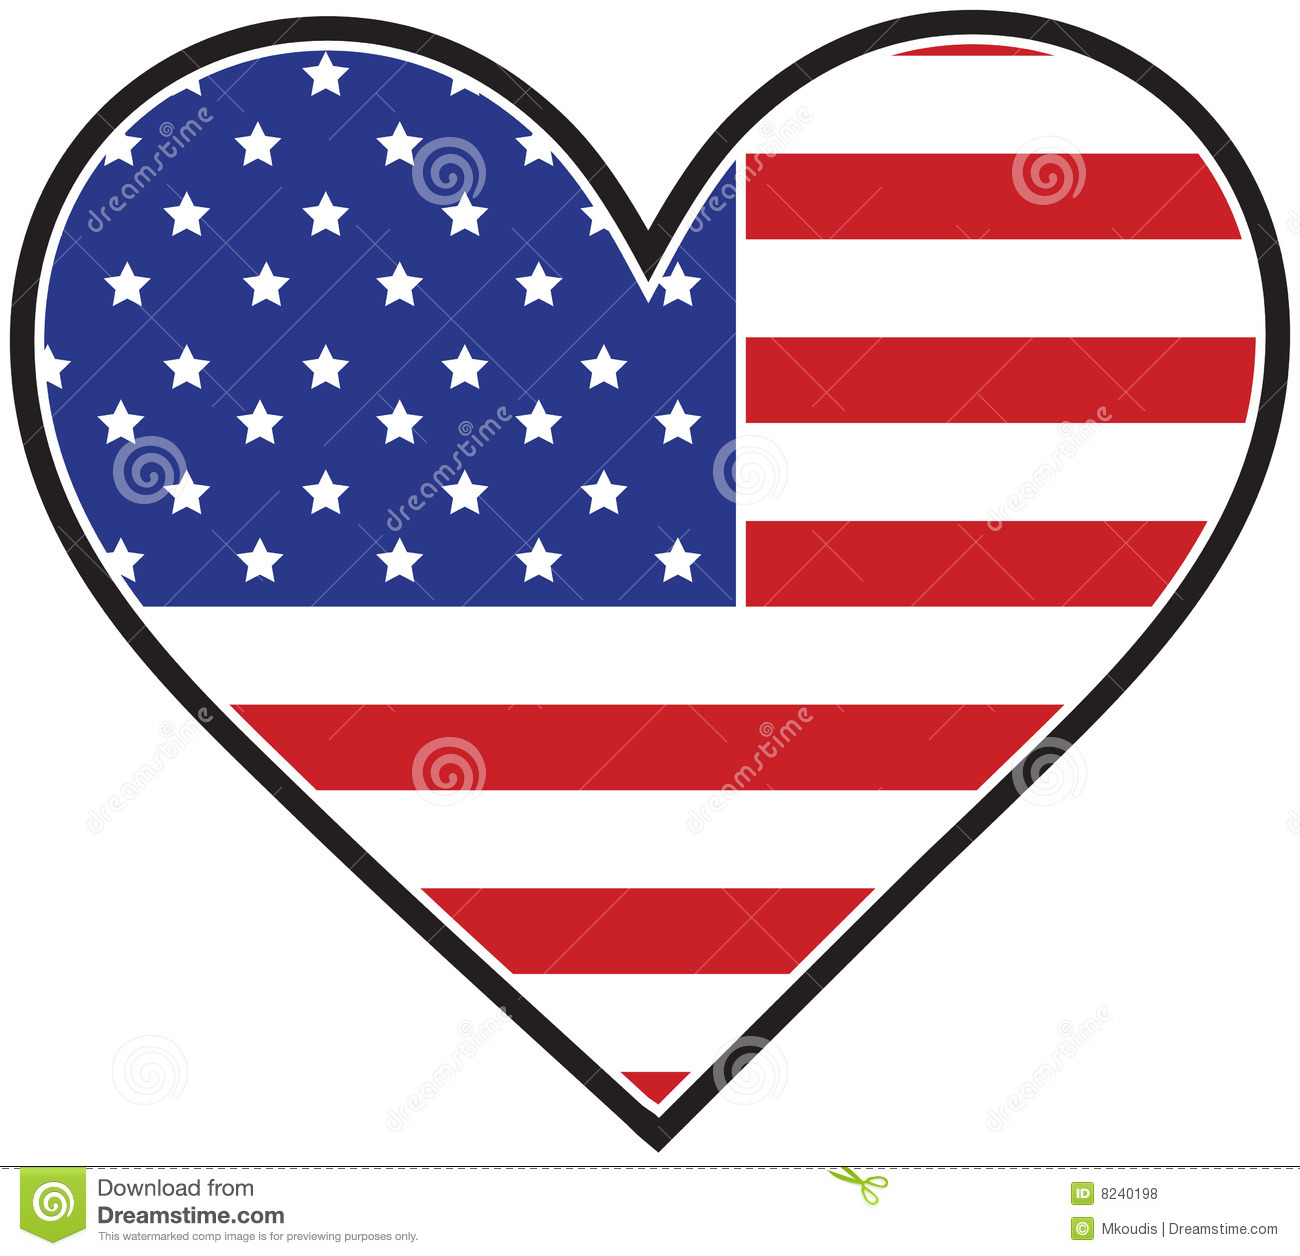 America Heart Flag Royalty Free Stock Photos - Image: 8240198